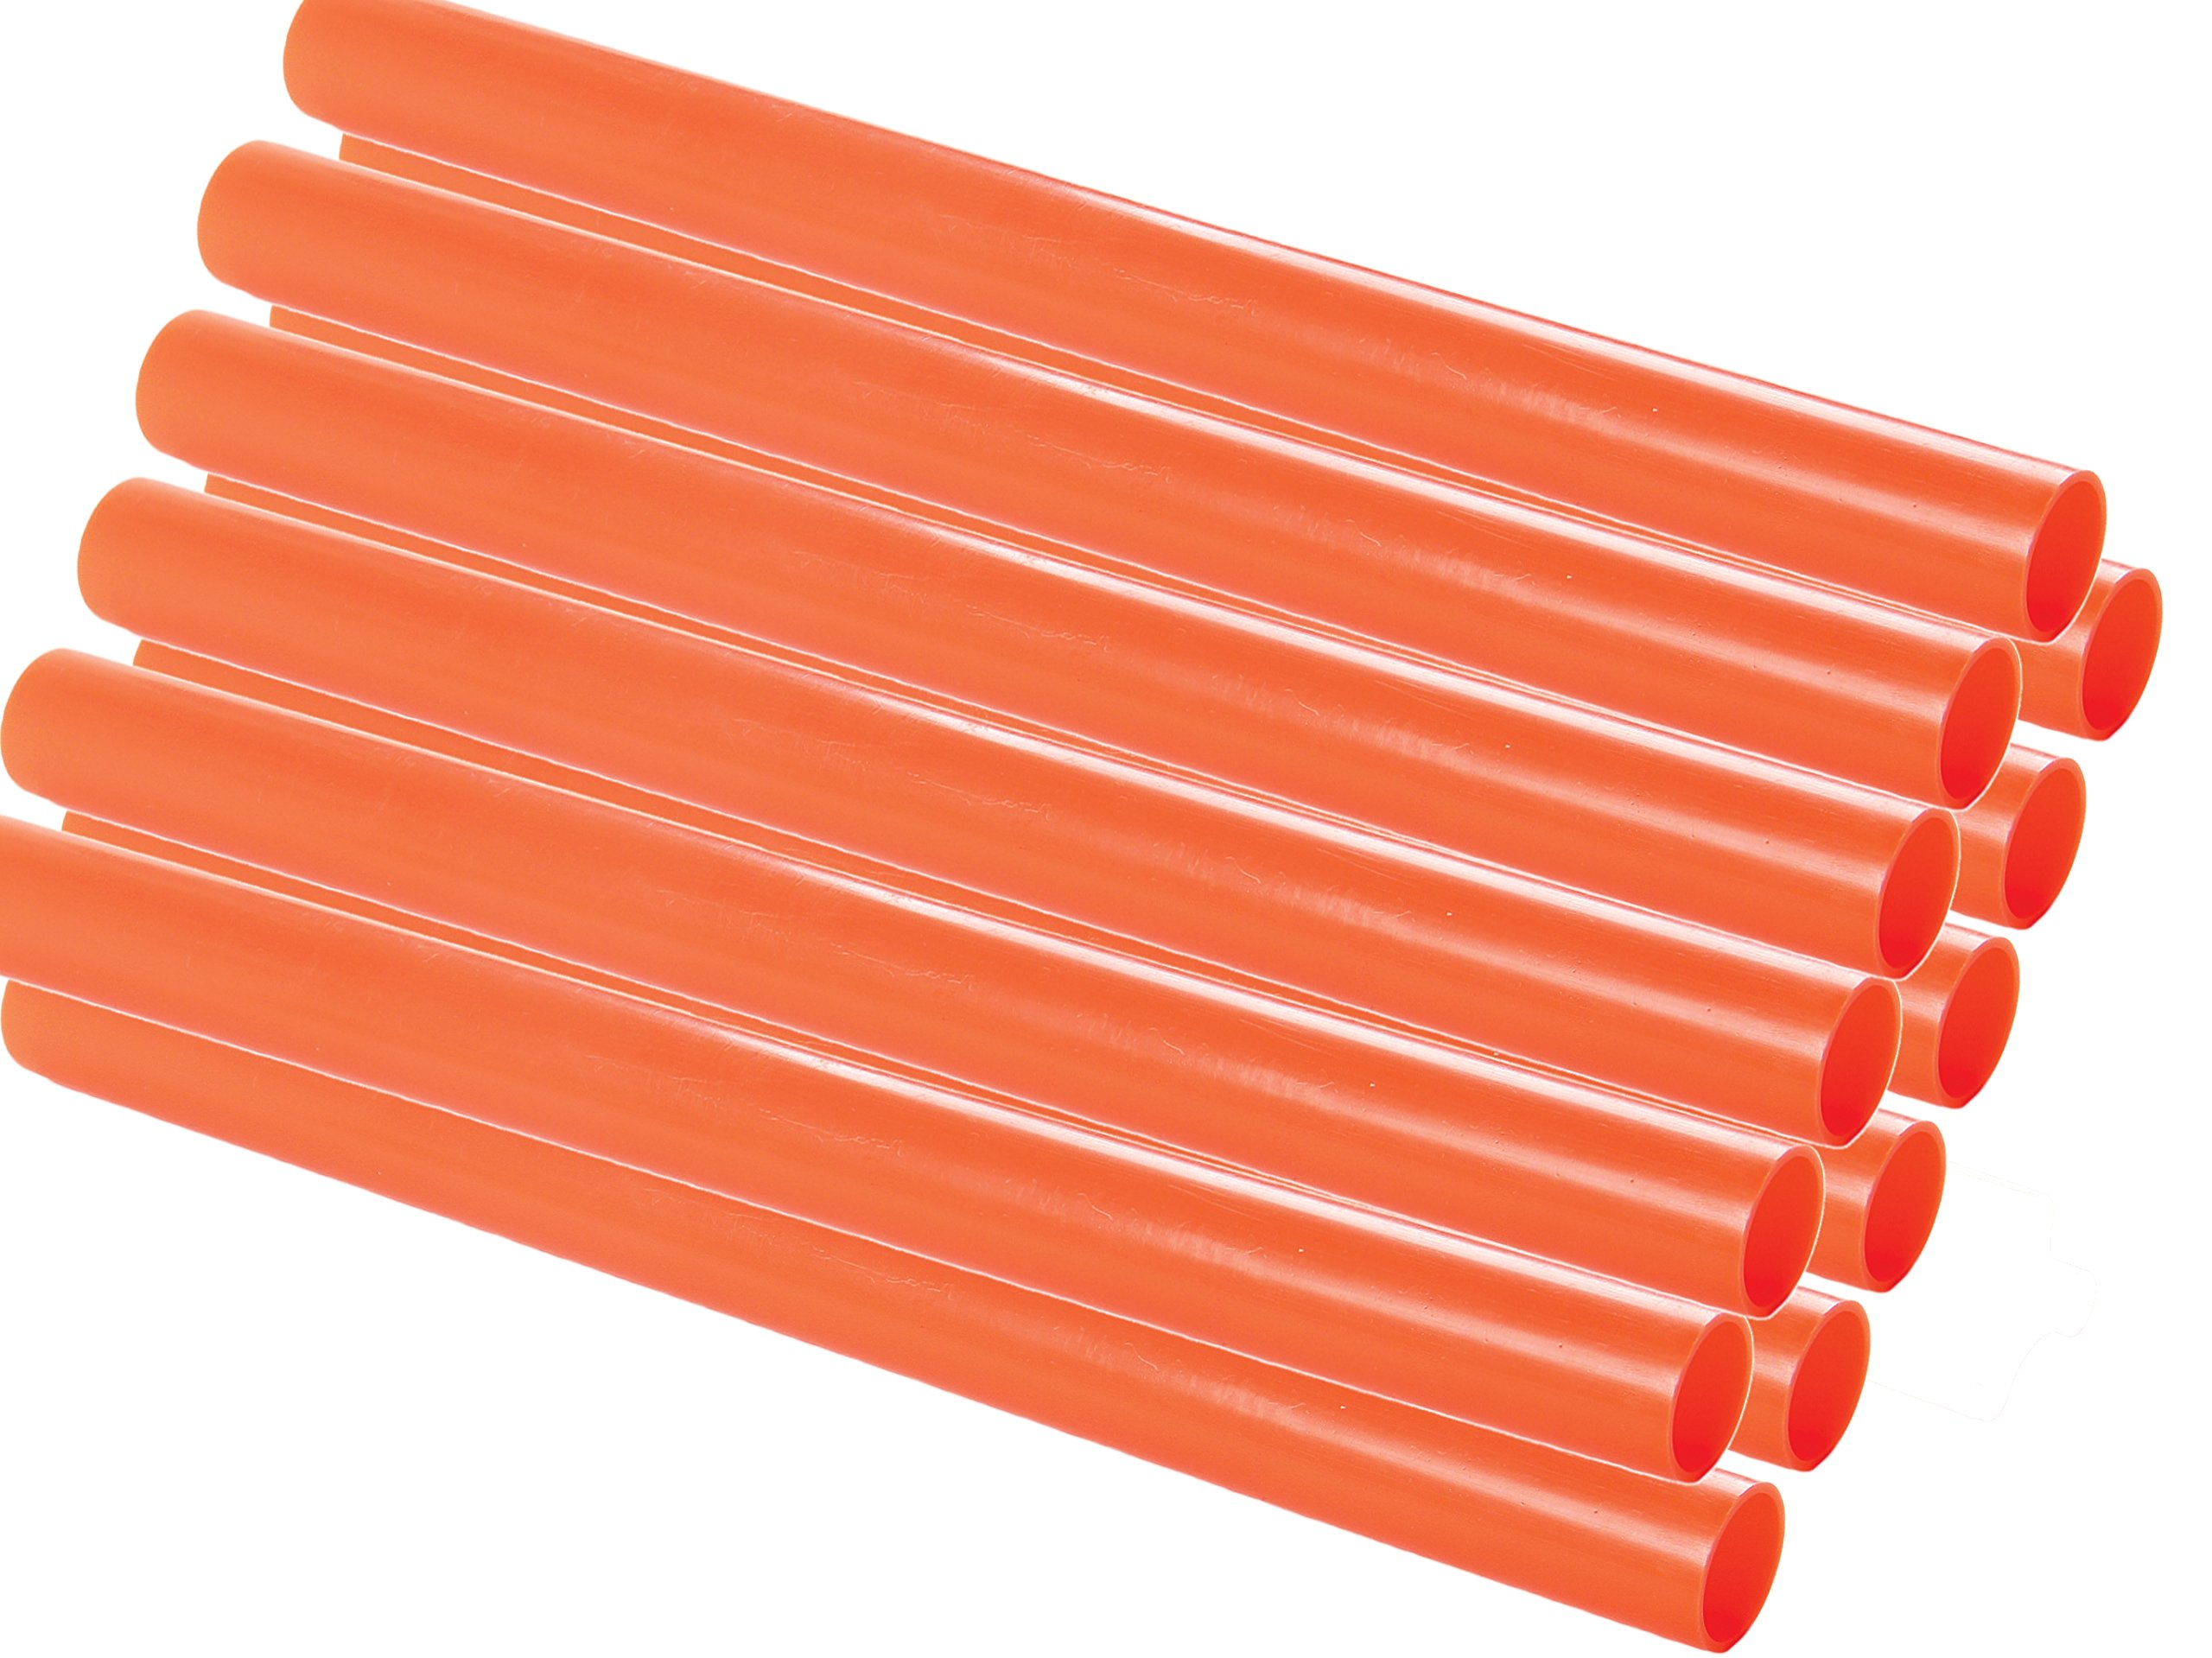 Safety Depot Orange High Visibility High Density Plastic Traffic Wand for Airports, Police, Directing Traffic, Construction, Parking, and Marshalling Baton Dw16-r (12 Pack Round) by Safety Depot